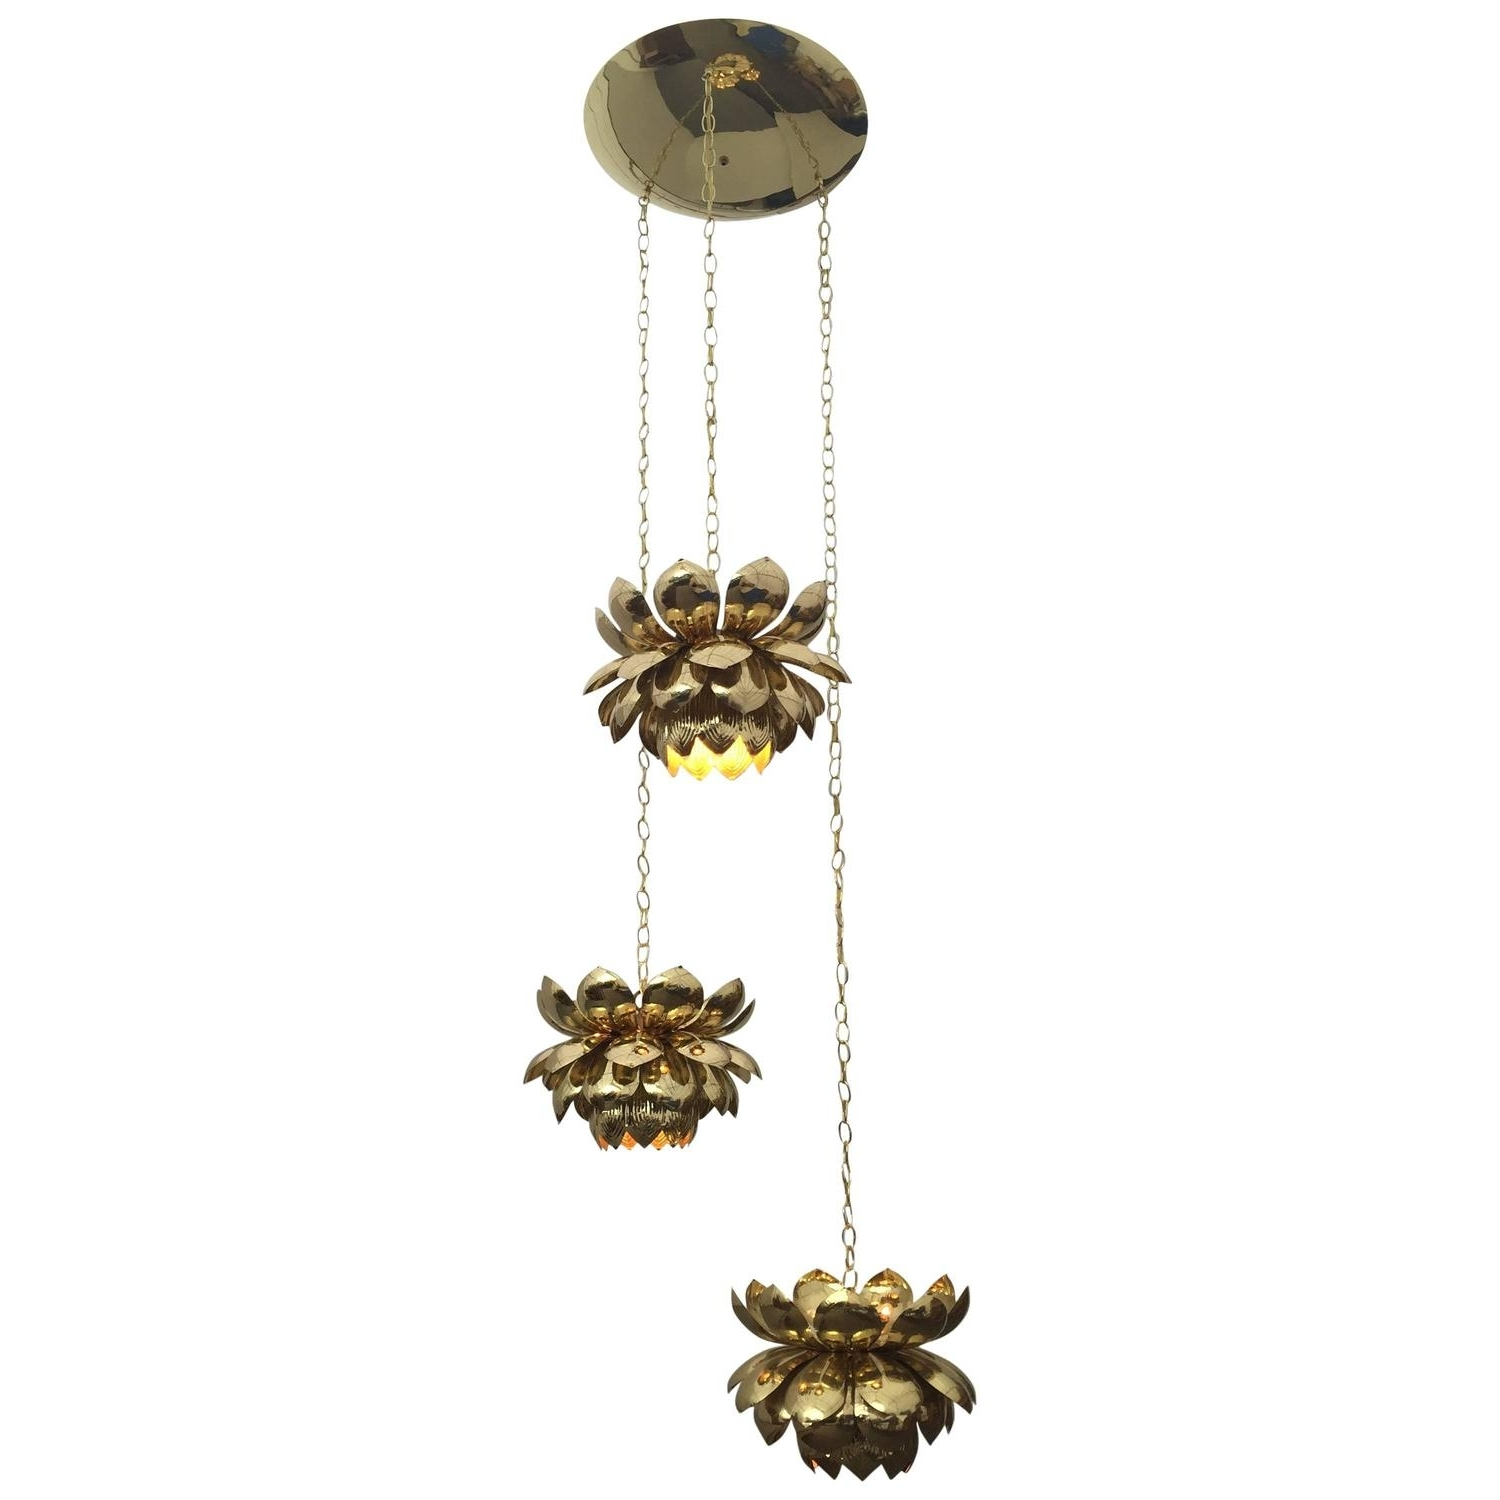 Famous Large Brass Chandelier Throughout Massive Feldman Brass Chandelier With Large Lotus Pendants For Sale (View 3 of 15)